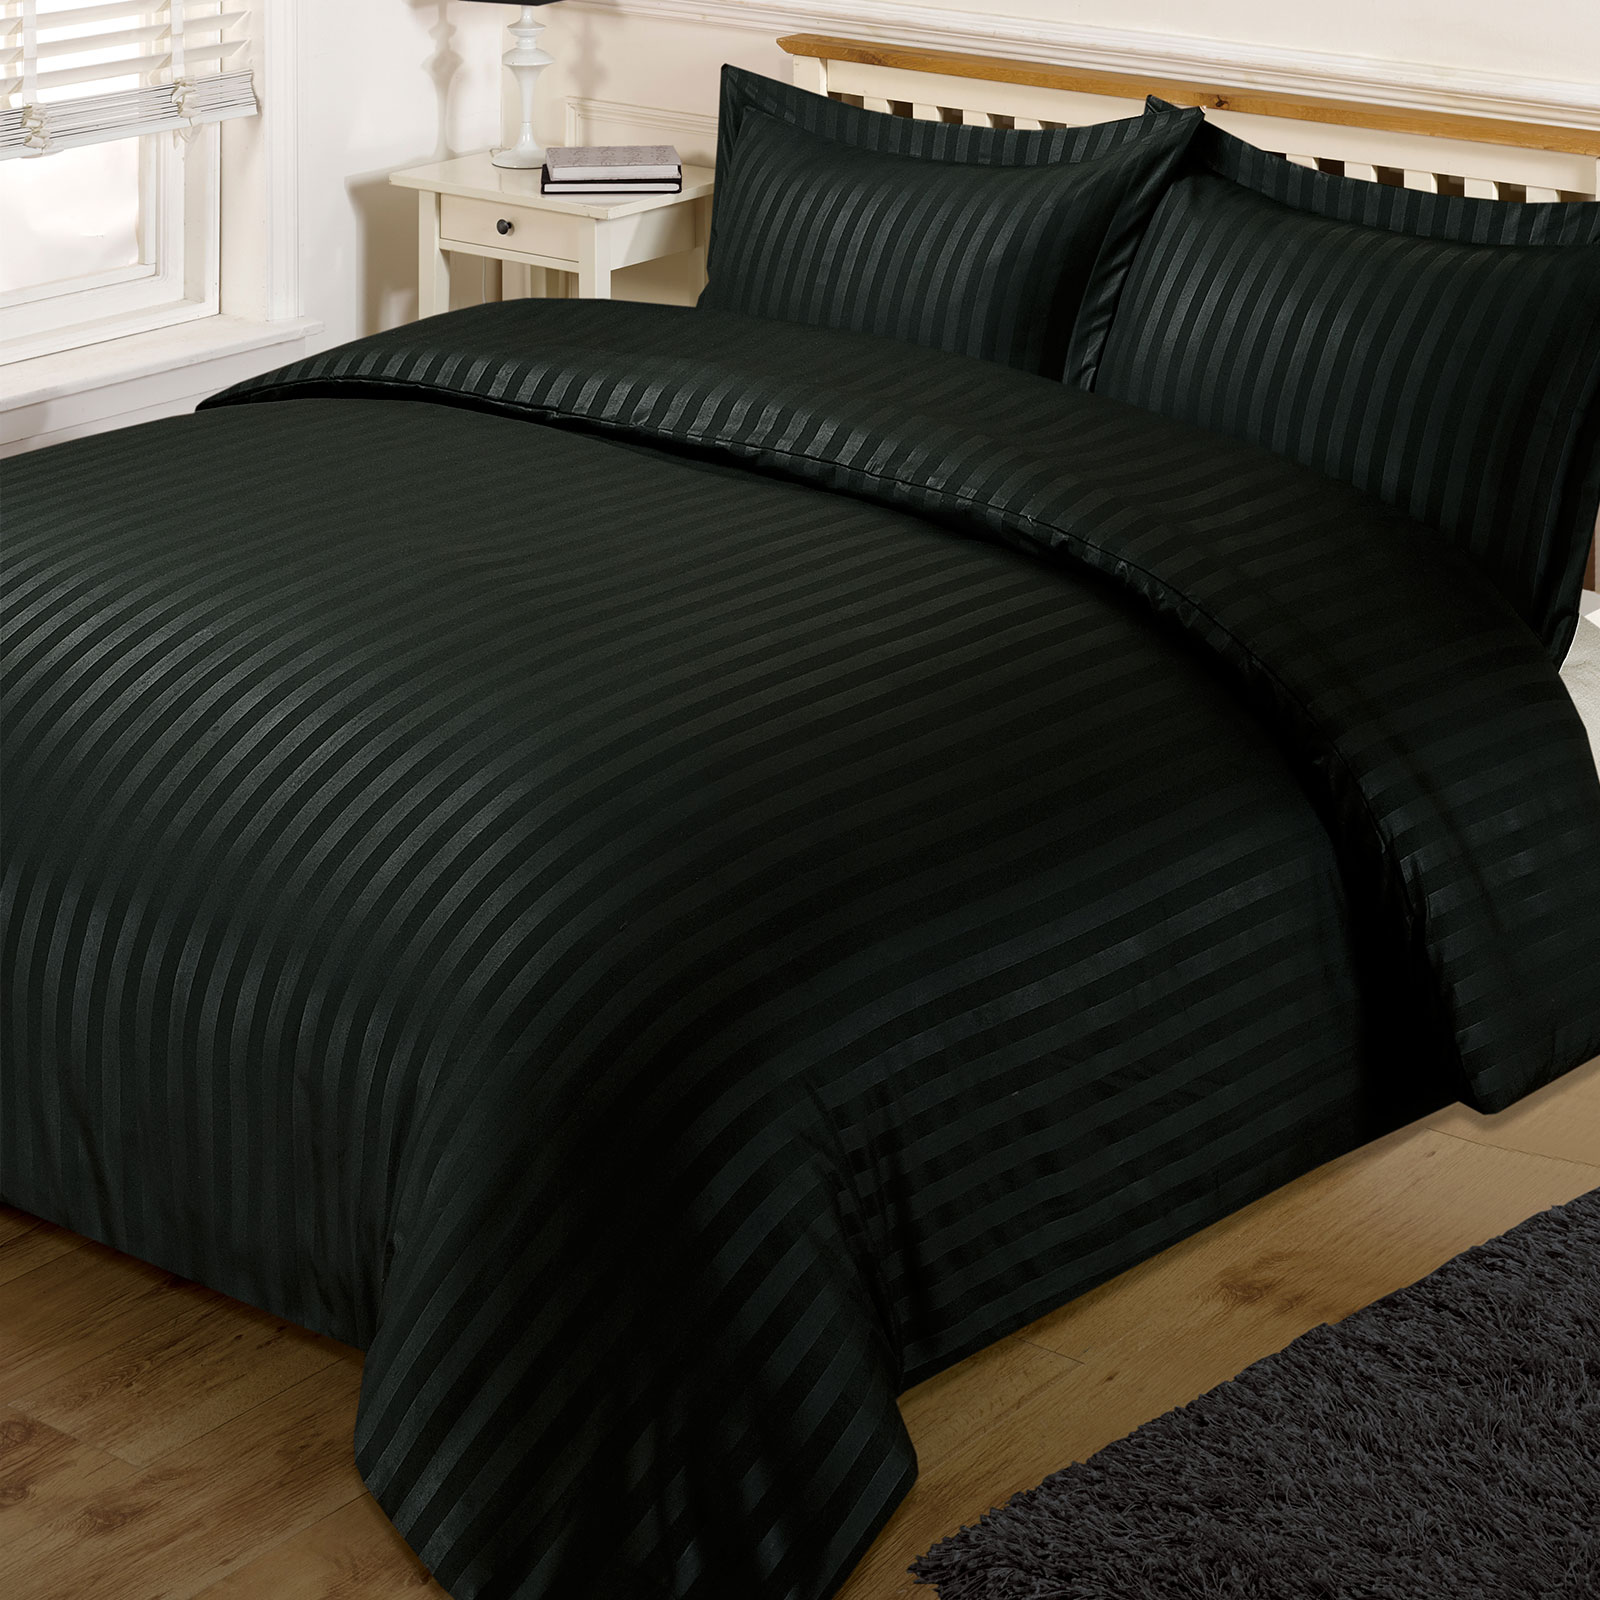 brentfords satin stripe quilt duvet cover with pillowcase set single